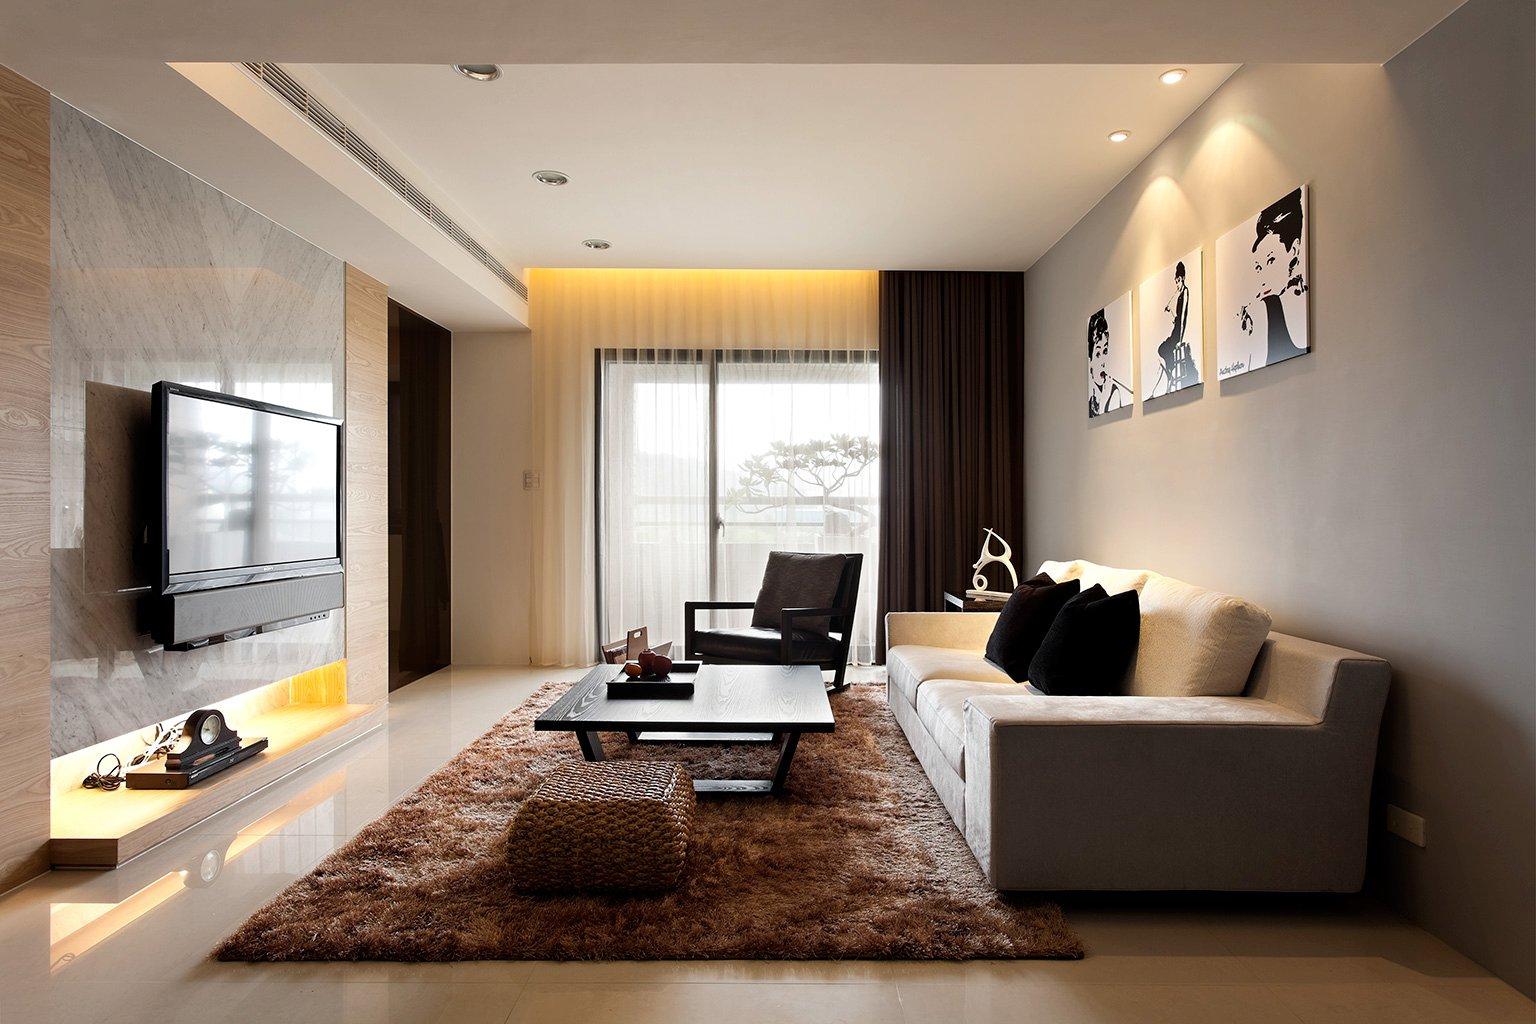 Modern living room design ideas - Modern Living Room With Beautiful Rug